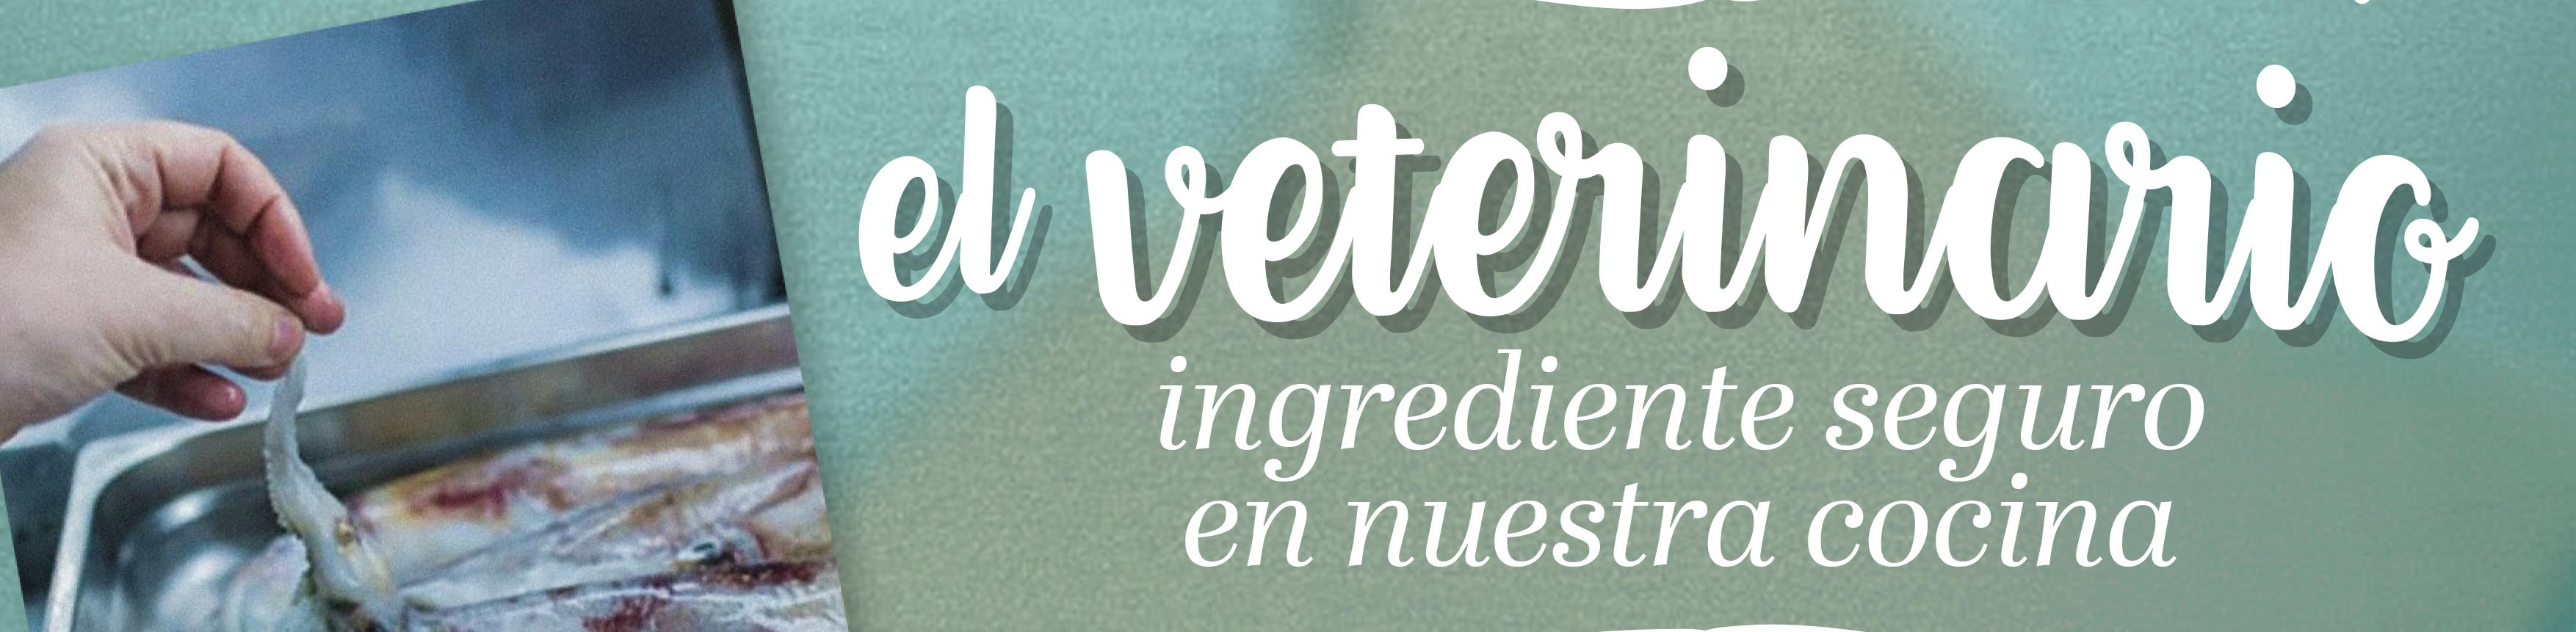 cartel-veterinario-ingredienteRGBfd-d